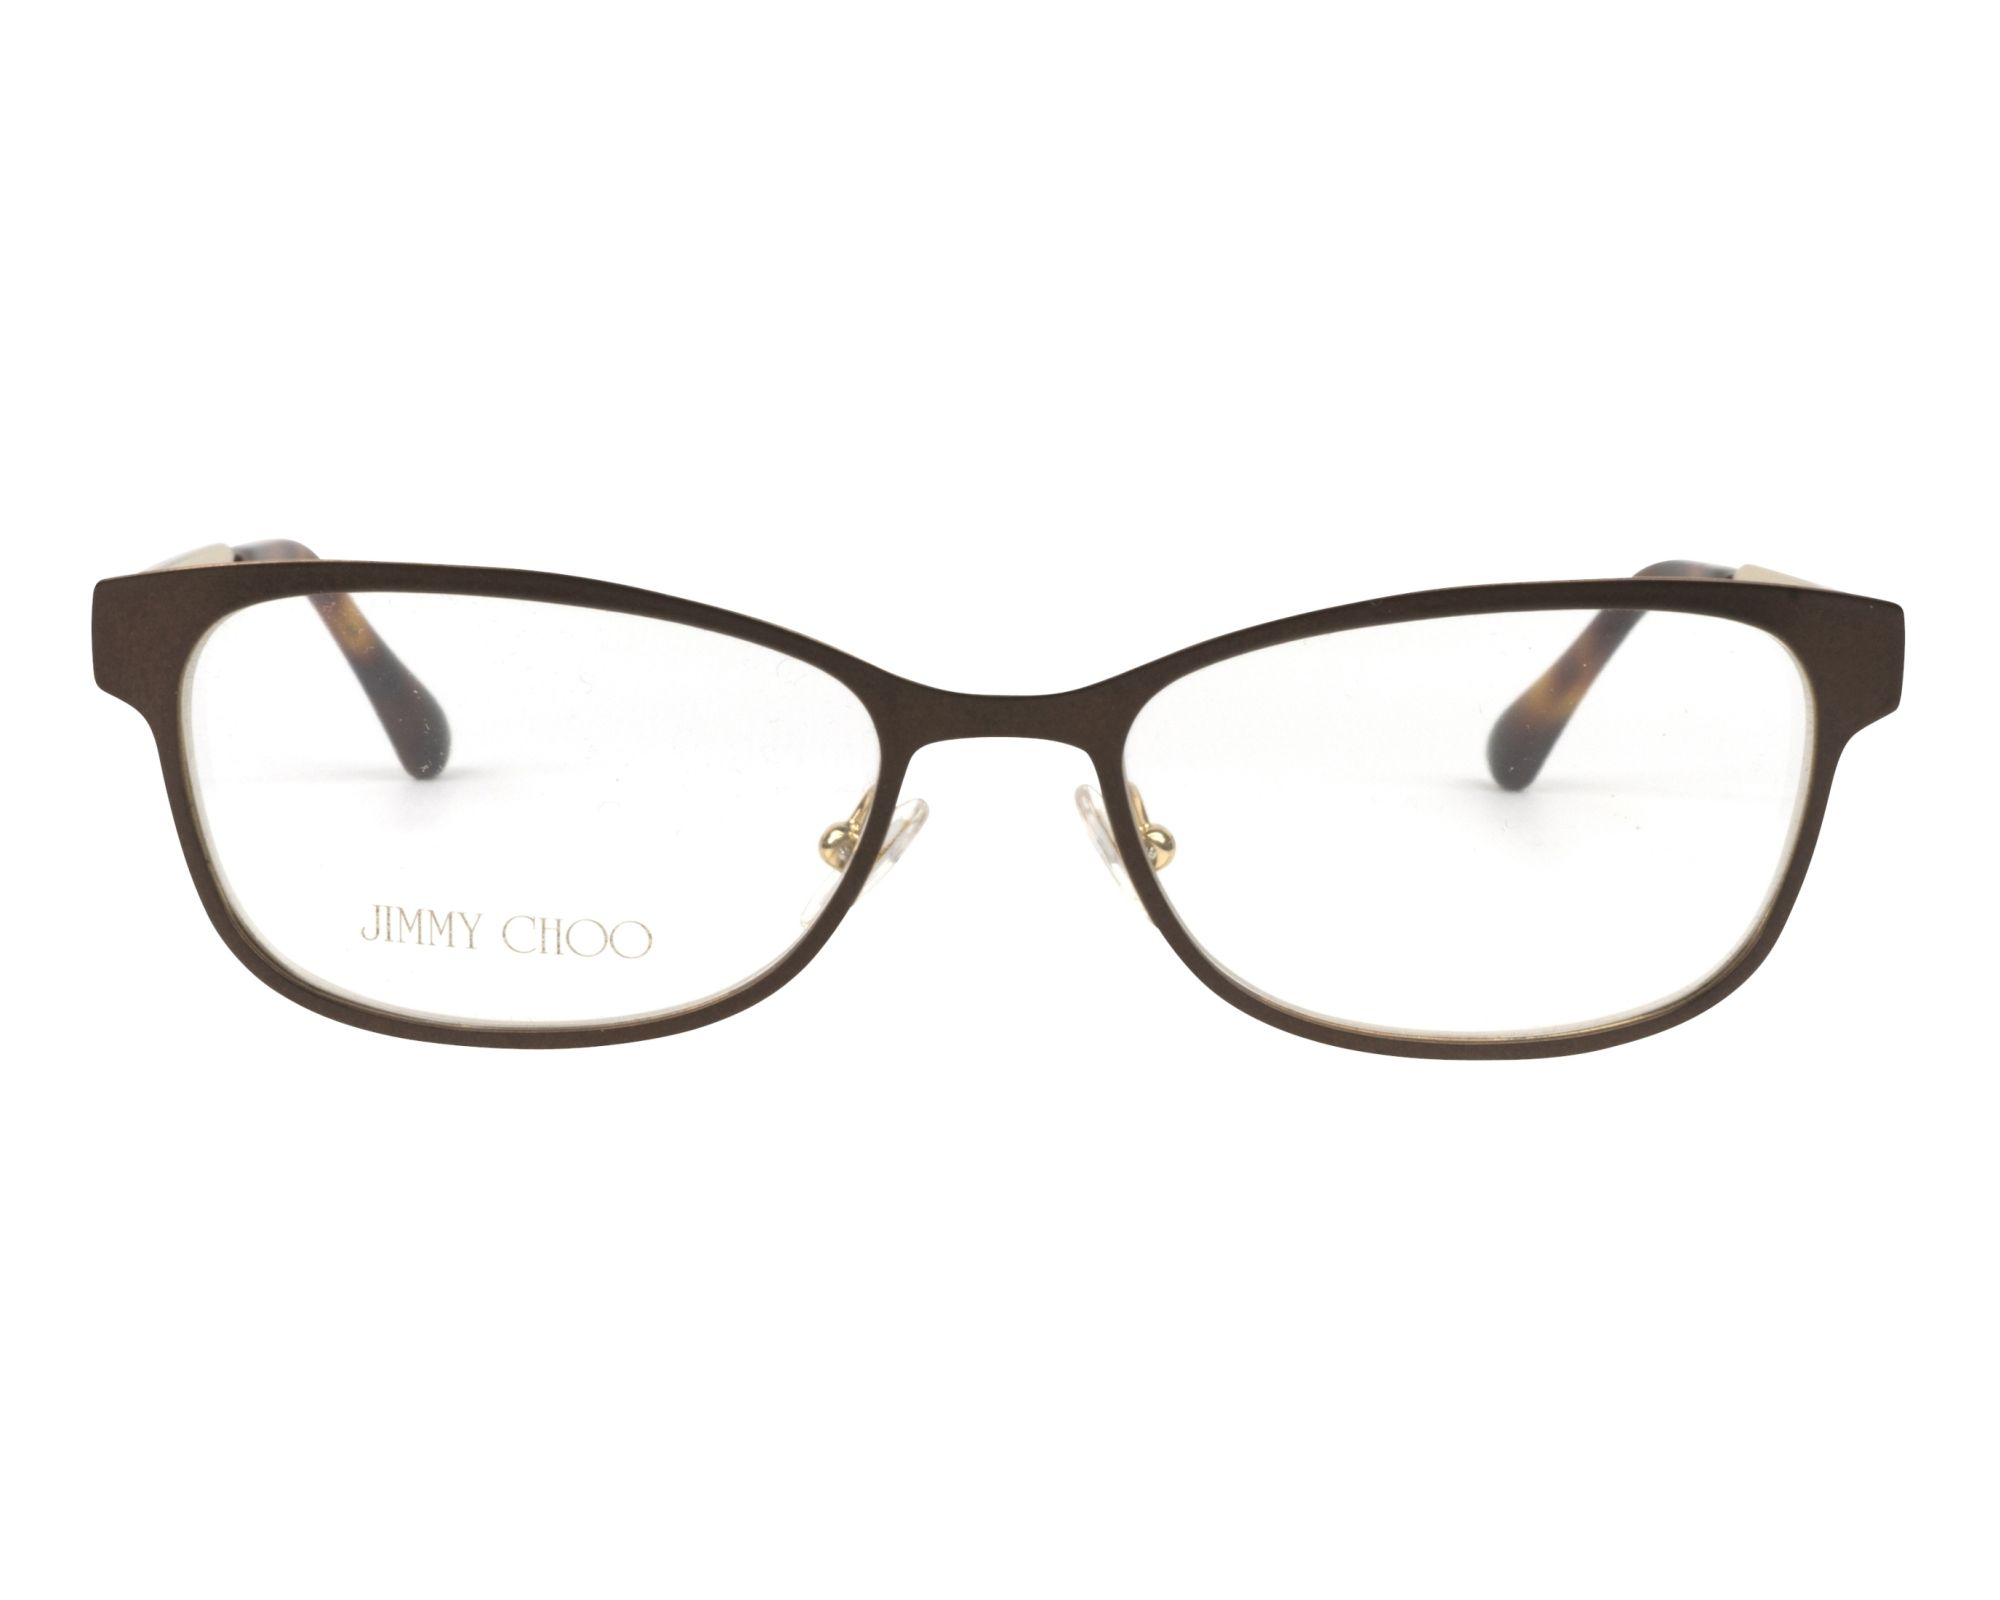 9a1fdc51f4a eyeglasses Jimmy Choo JC-203 4IN 52-16 Brown Gold front view